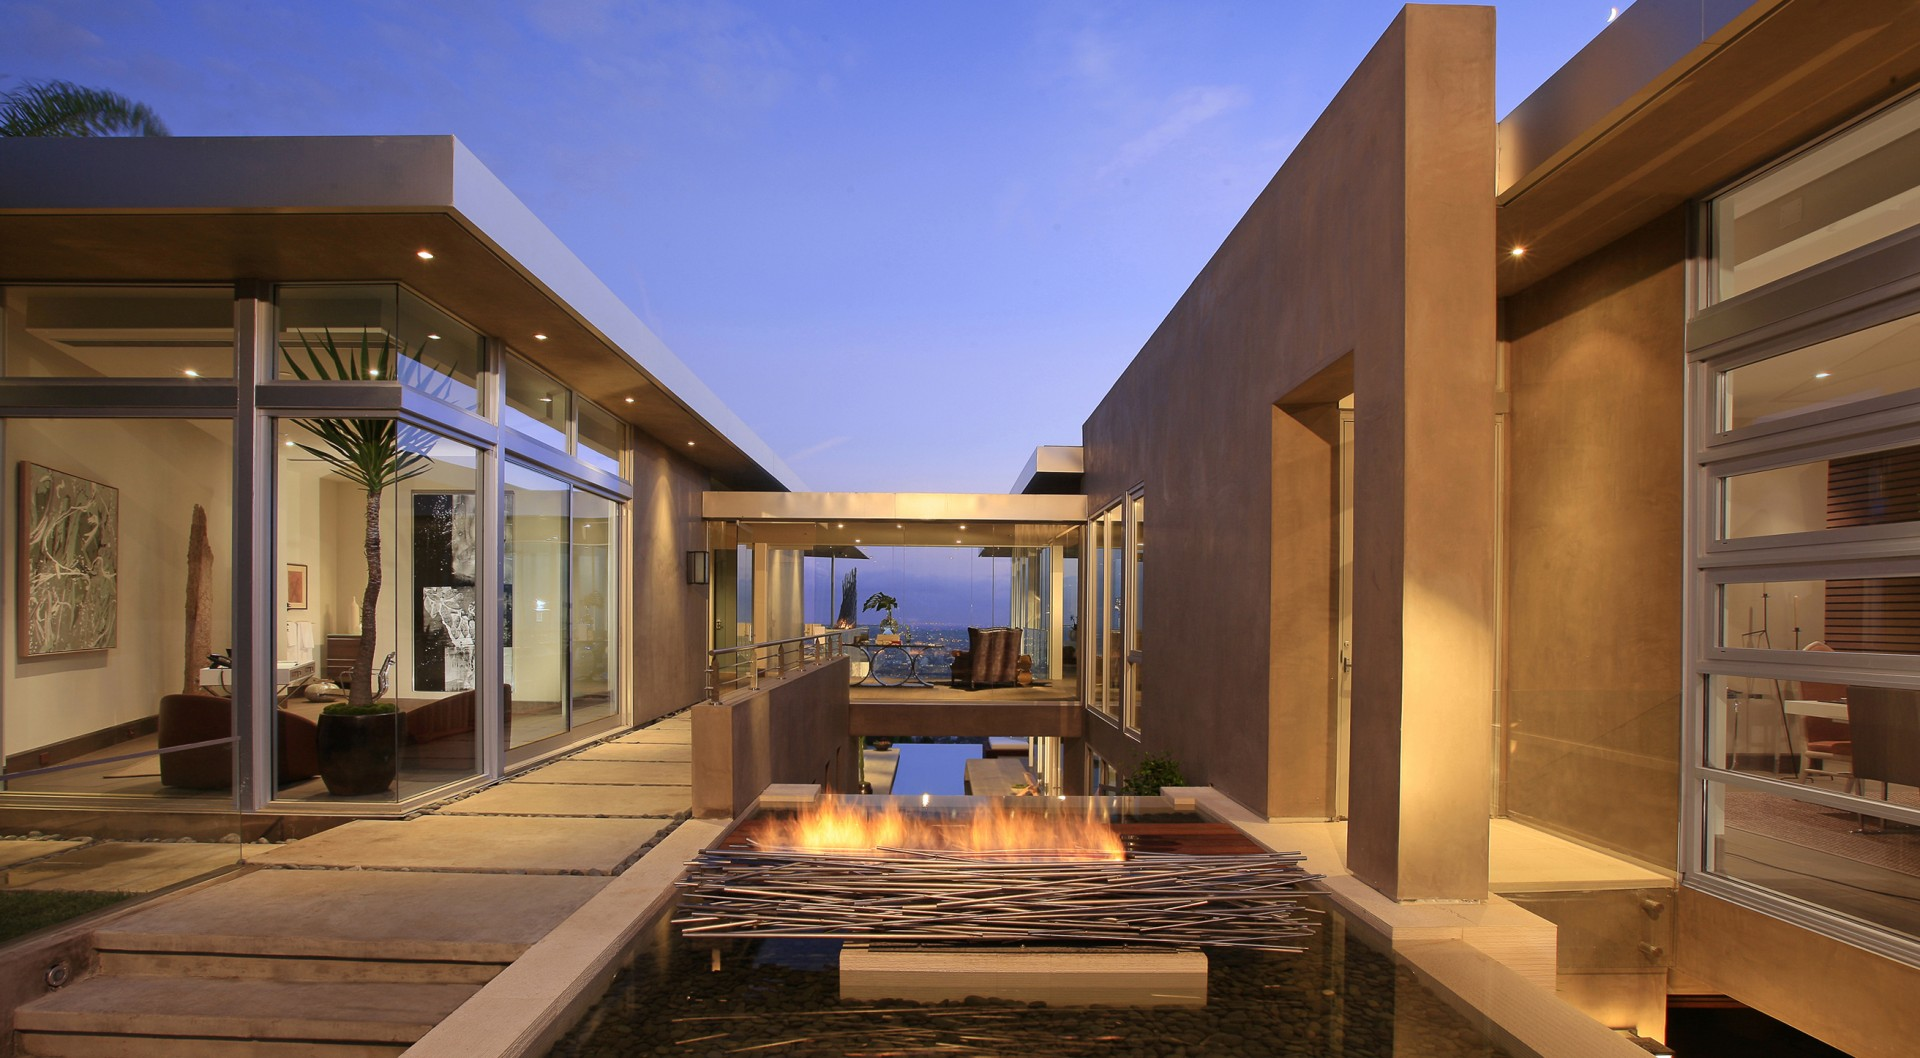 Los angeles architect house design mcclean design for Modern house design los angeles